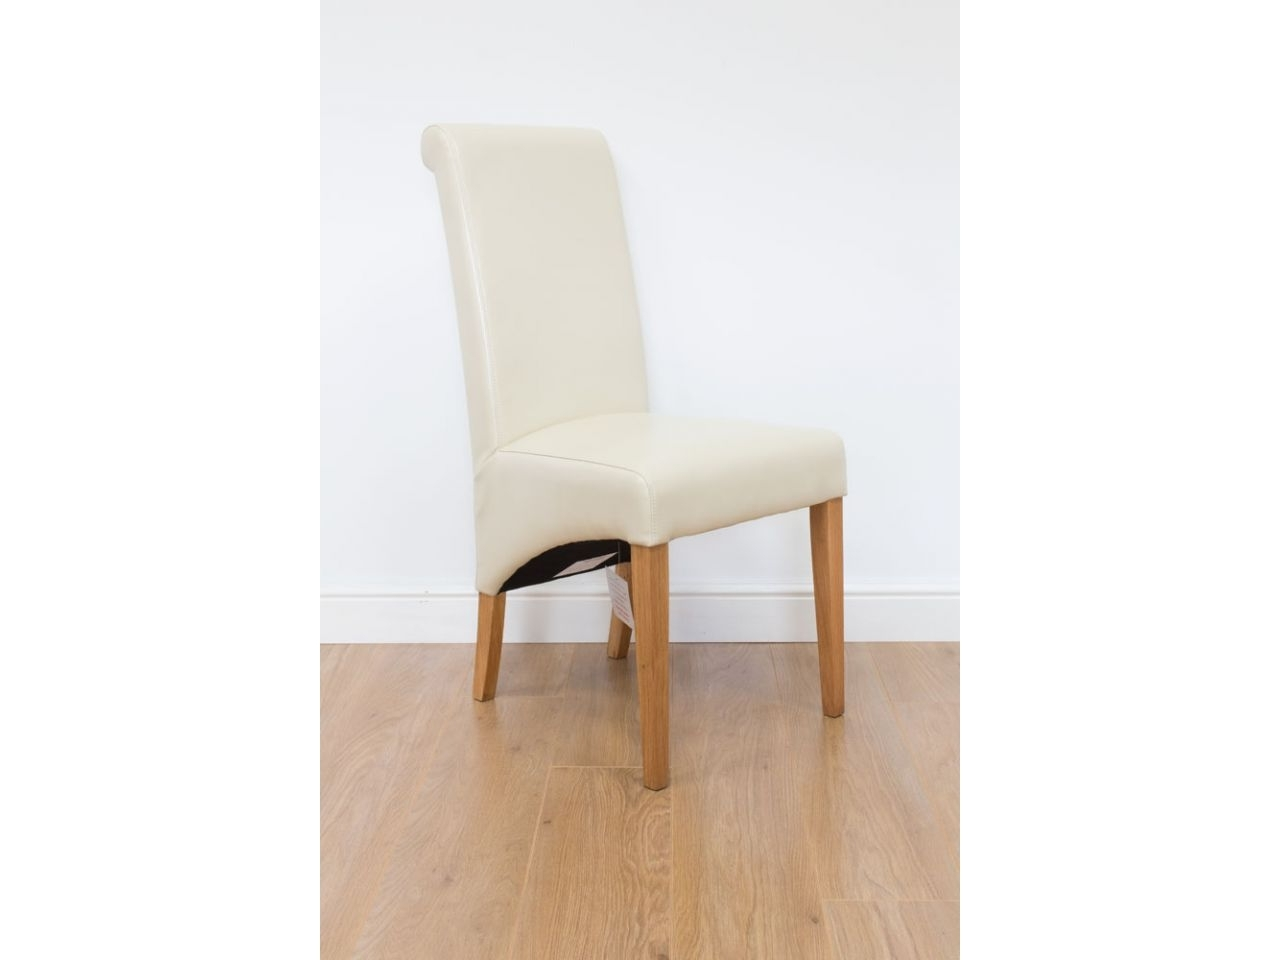 Well Known Cream Leather Dining Chairs Inside Tuscan Cream Leather Dining Chair (View 24 of 25)